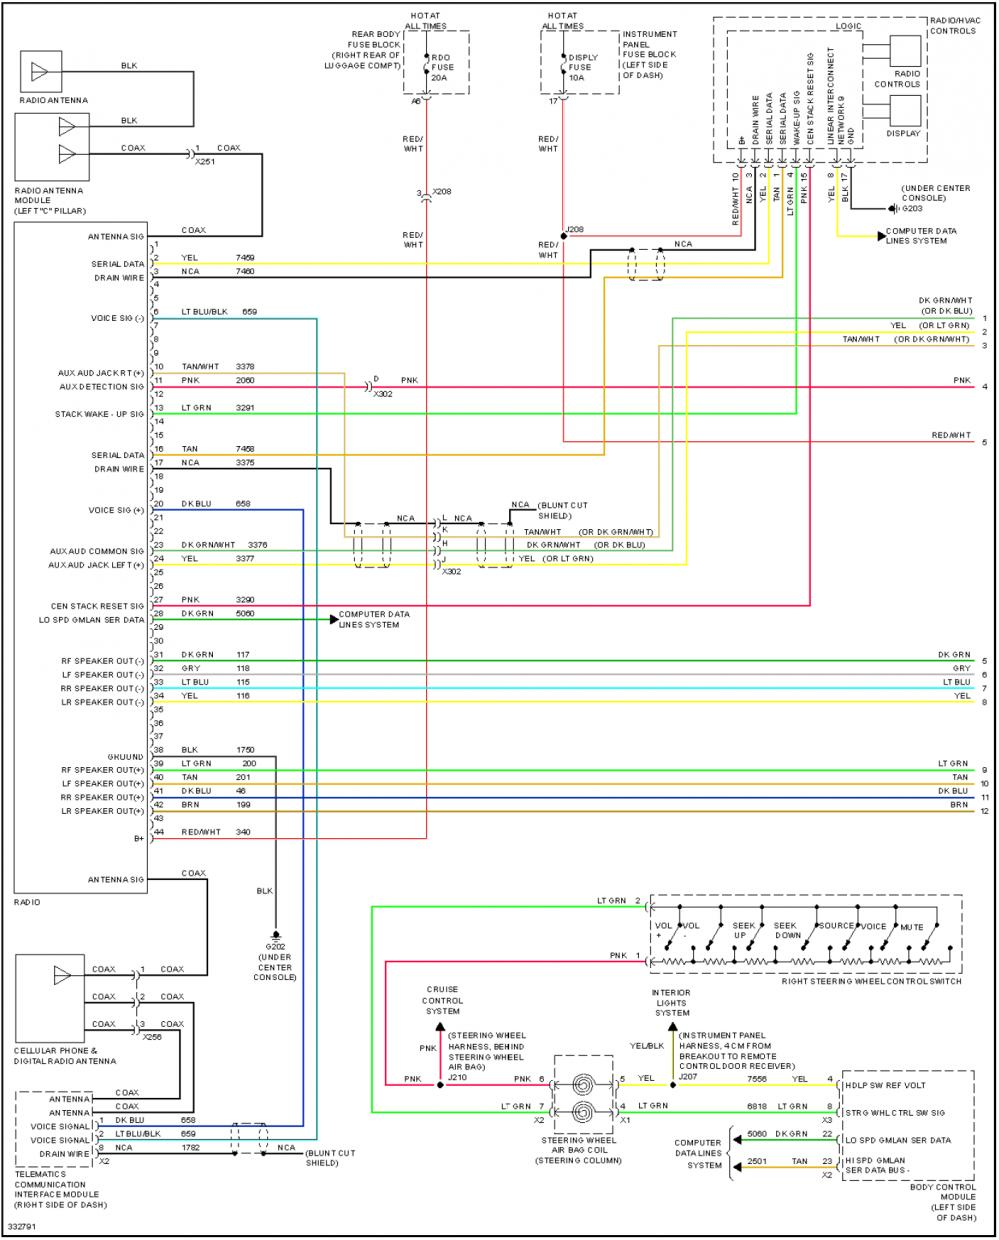 kenwood dnx6990hd wiring harness diagram kenwood dnx6990hd kenwood dnx6990hd wiring harness diagram wiring diagram kenwood hardness wiring wiring diagrams projects